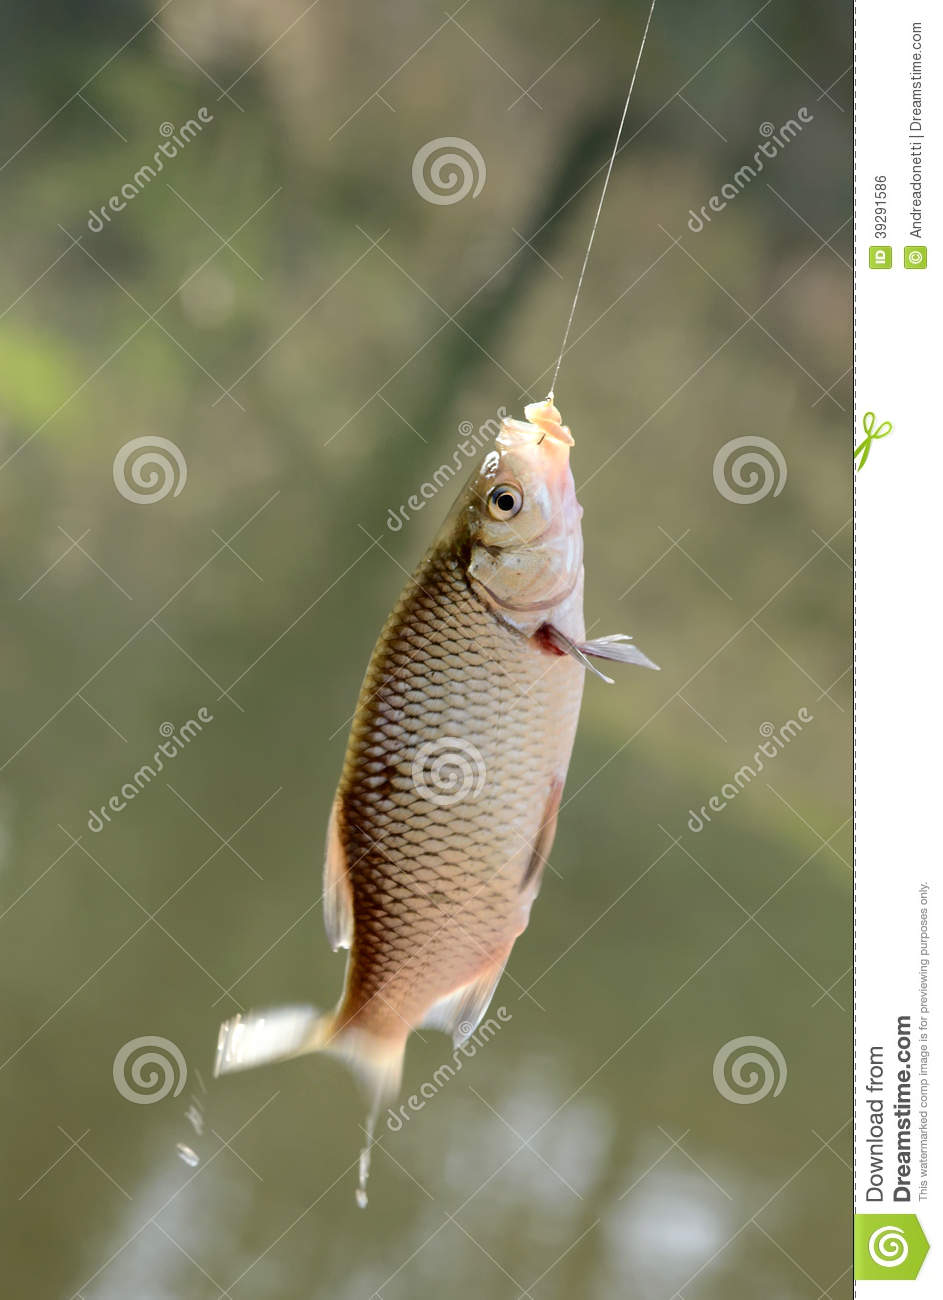 Freshly caught fish on a hook and fishing line stock photo for Take me fishing org